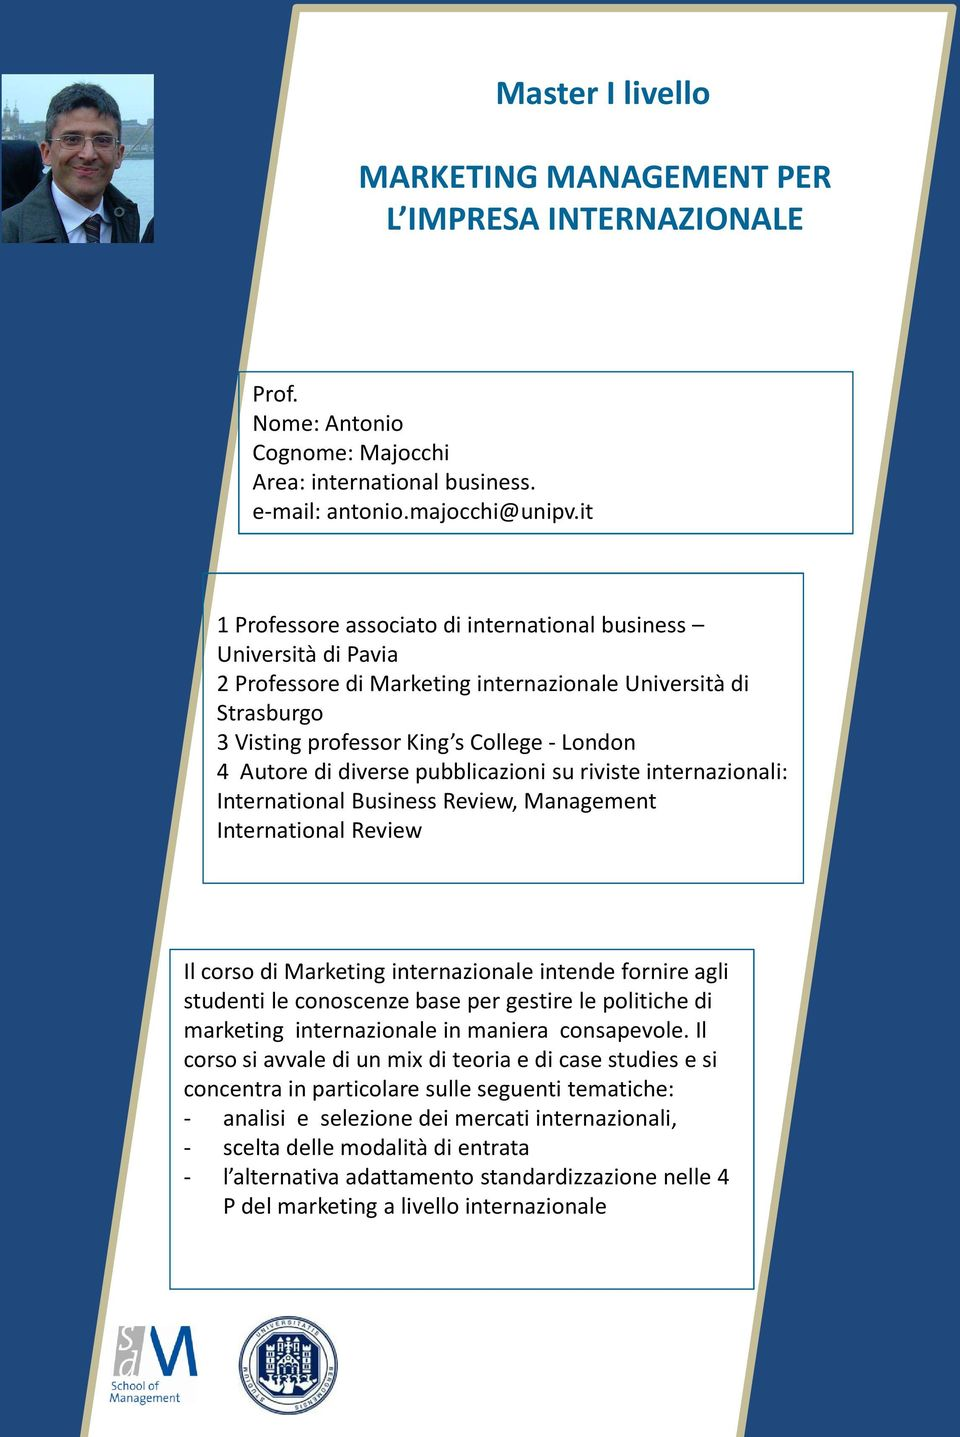 diverse pubblicazioni su riviste internazionali: International Business Review, Management International Review Il corso di Marketing internazionale intende fornire agli studenti le conoscenze base